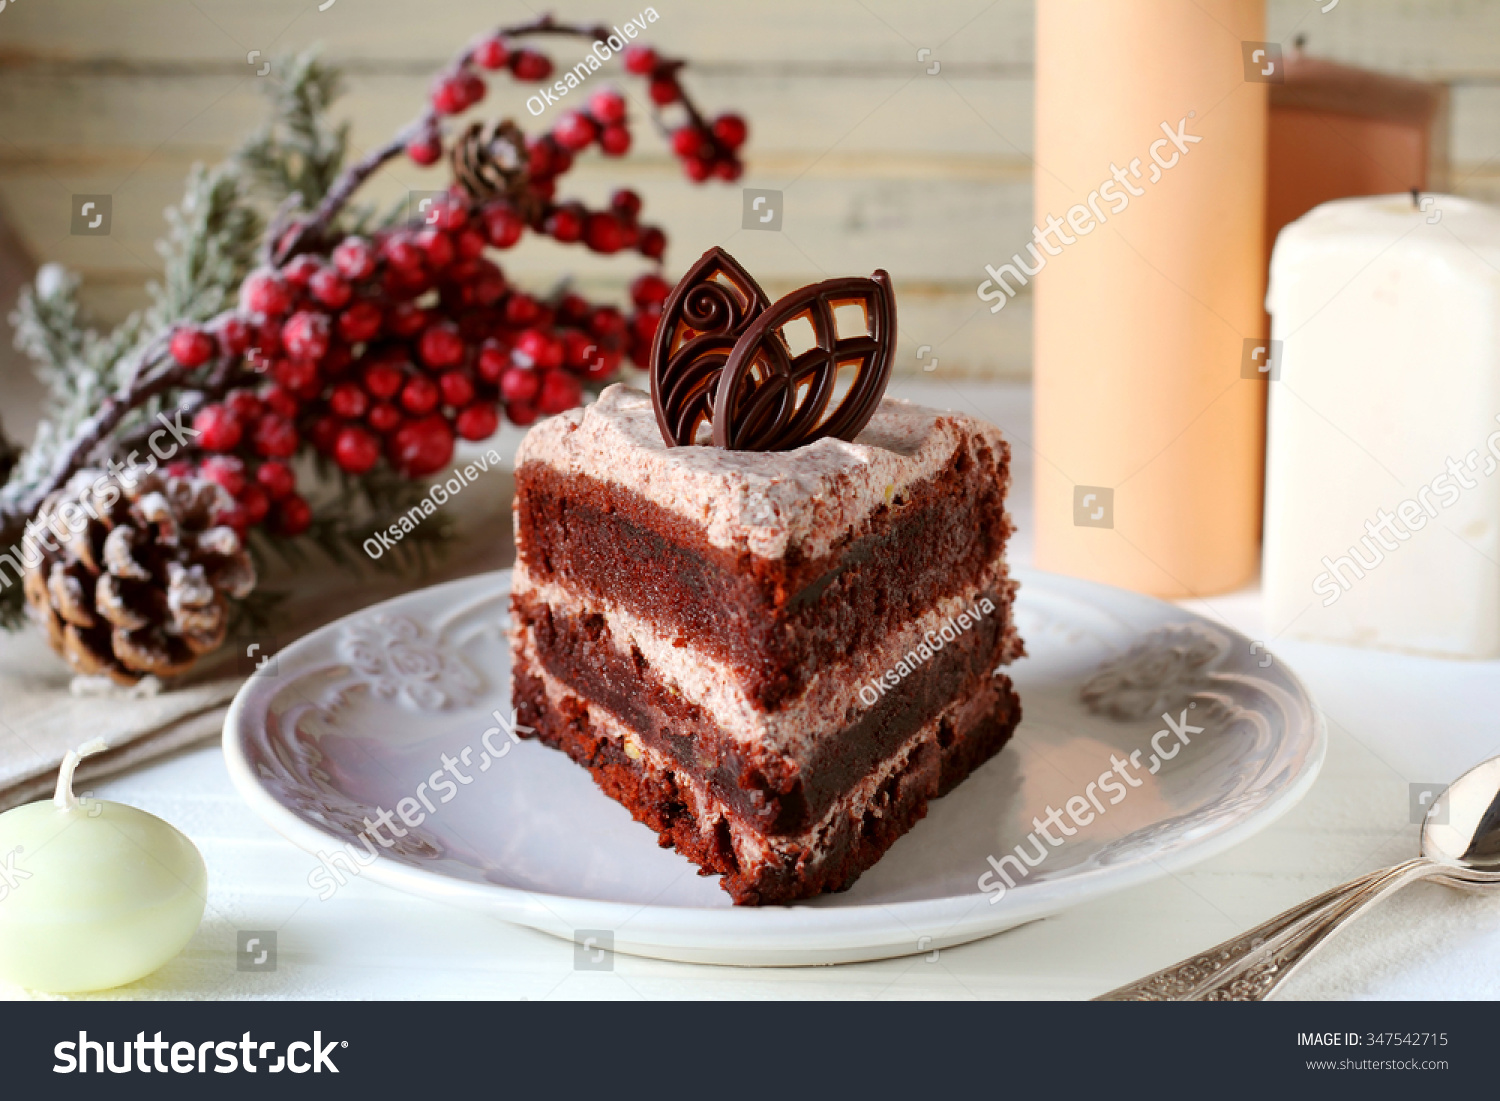 Photos Of Cake Hd